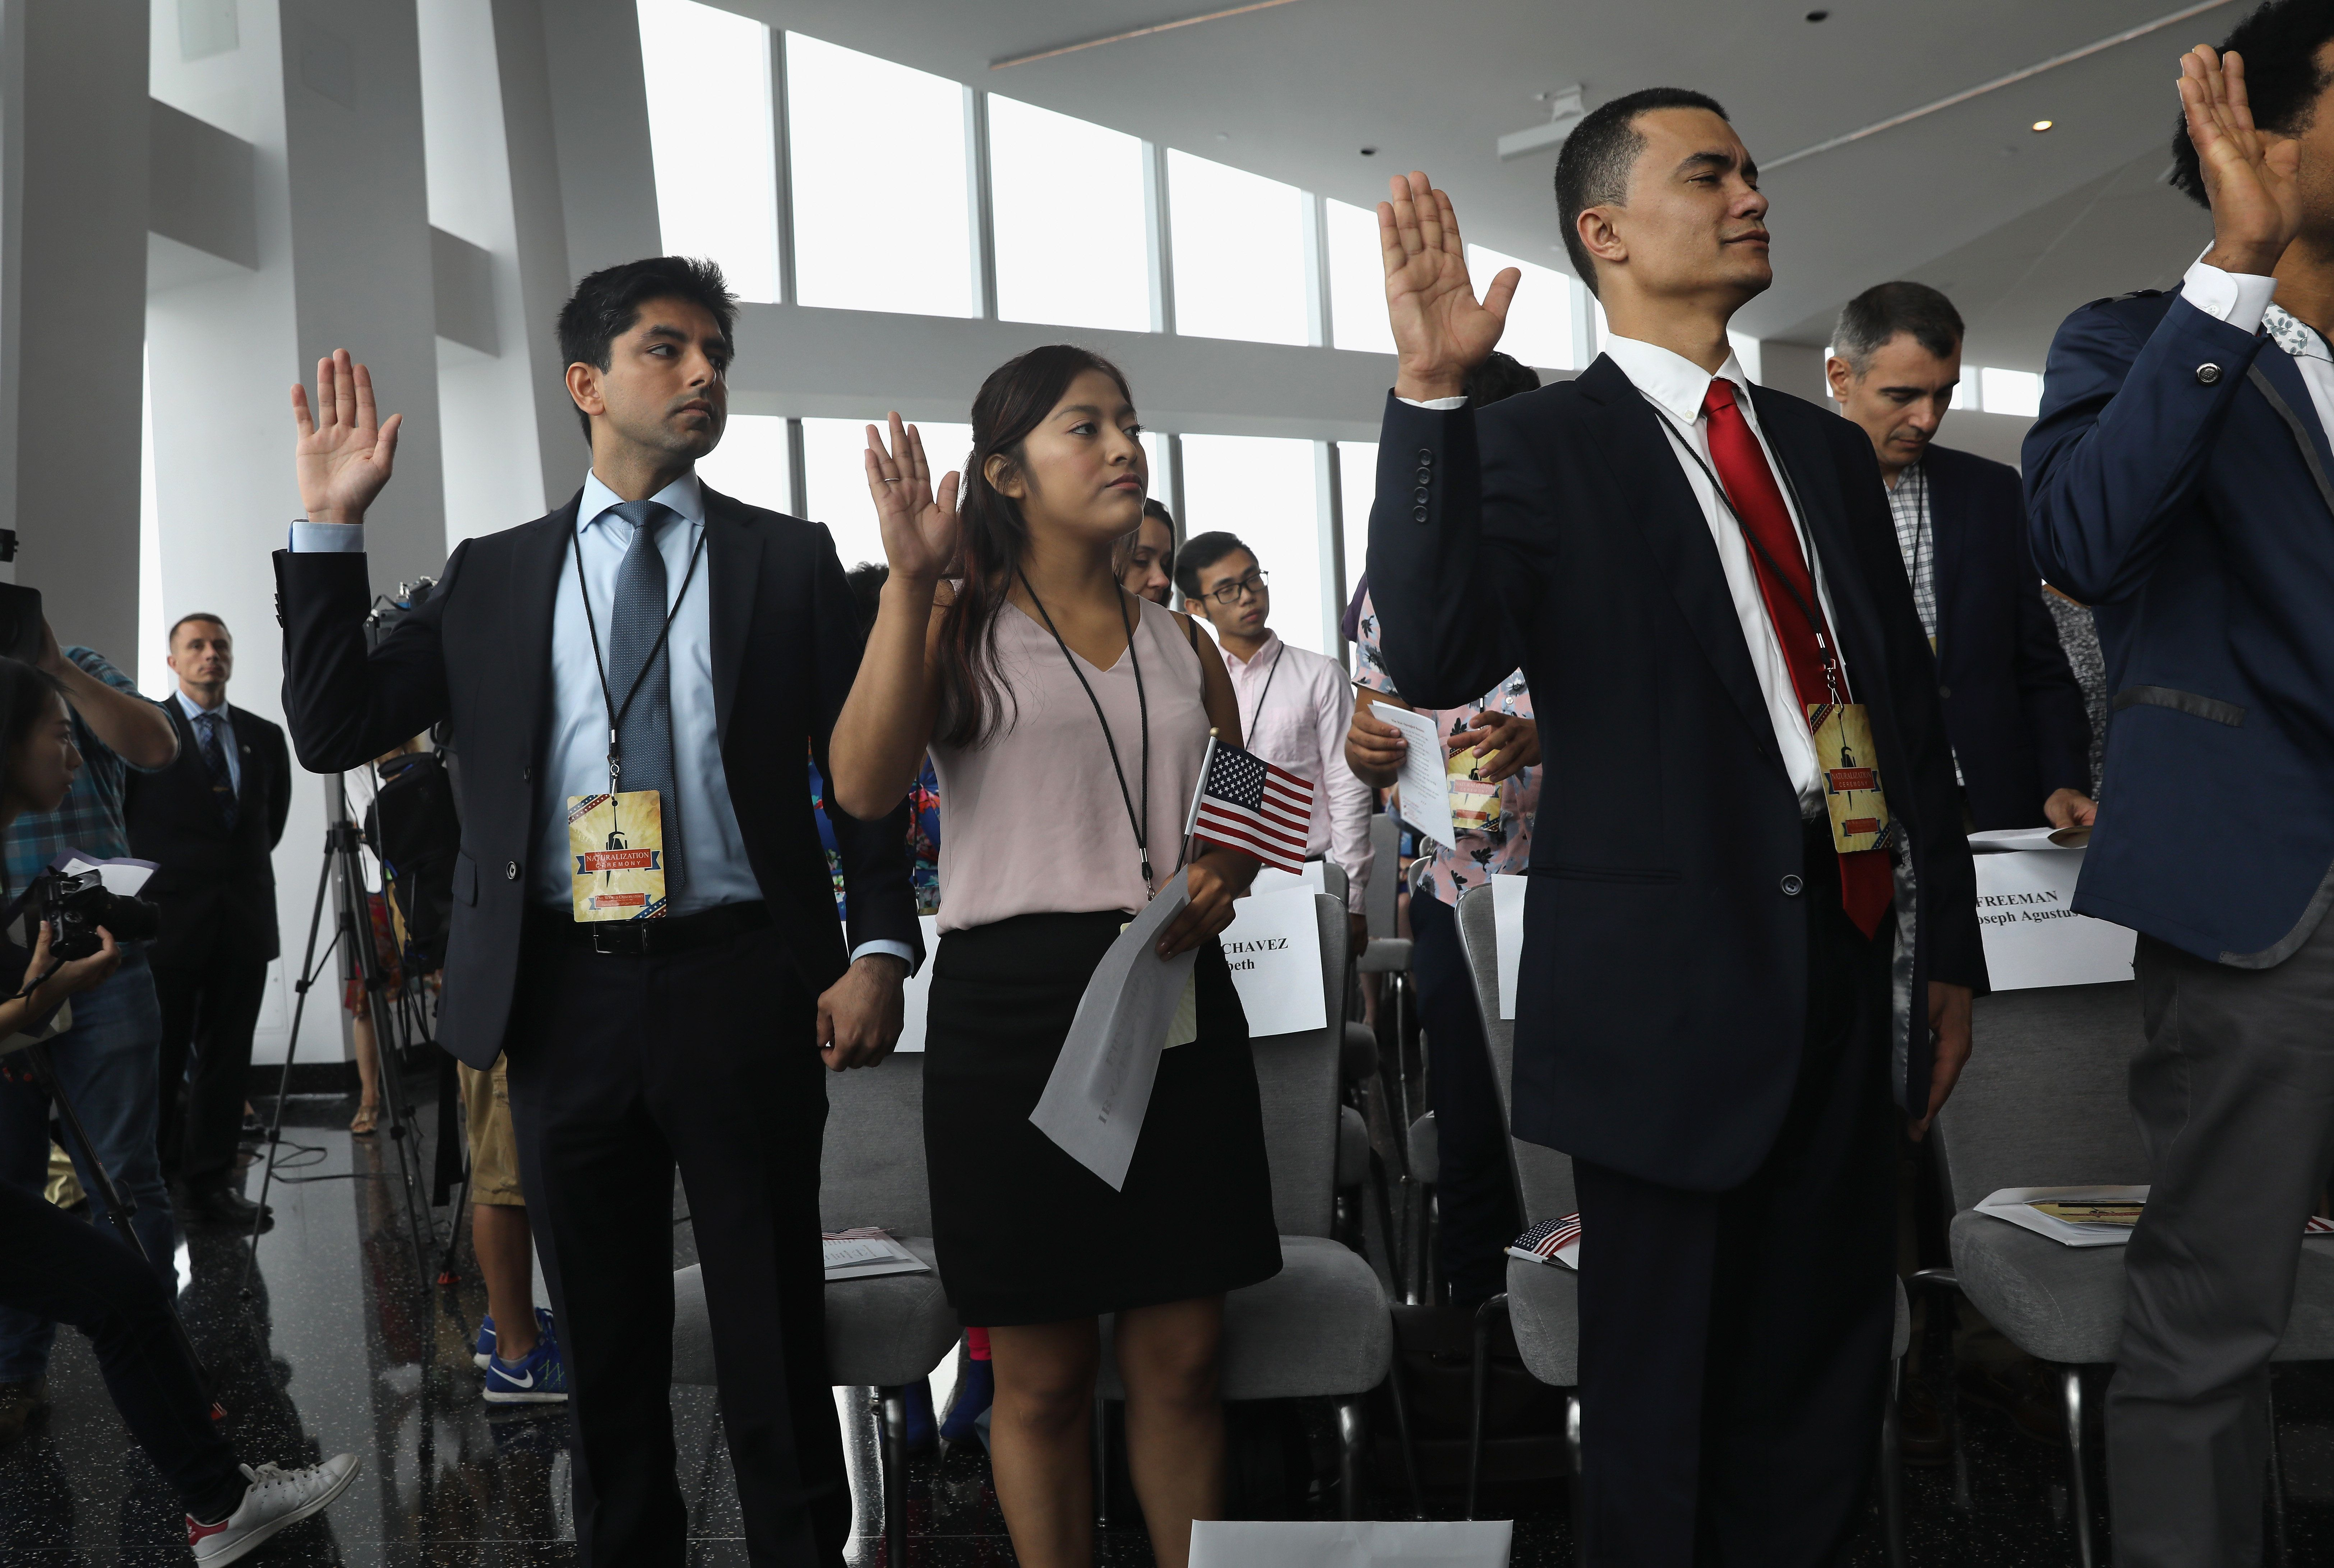 NEW YORK, NY - AUGUST 15:  Immigrants take the oath of allegiance to the United States held in the observatory of the One World Trade Center on August 15, 2017 in New York City. Thirty immigrants took the oath of citizenship to become American citizens at One World Trade, which at 1,776 feet high is the tallest building in the Western Hemishere. (Photo by John Moore/Getty Images)